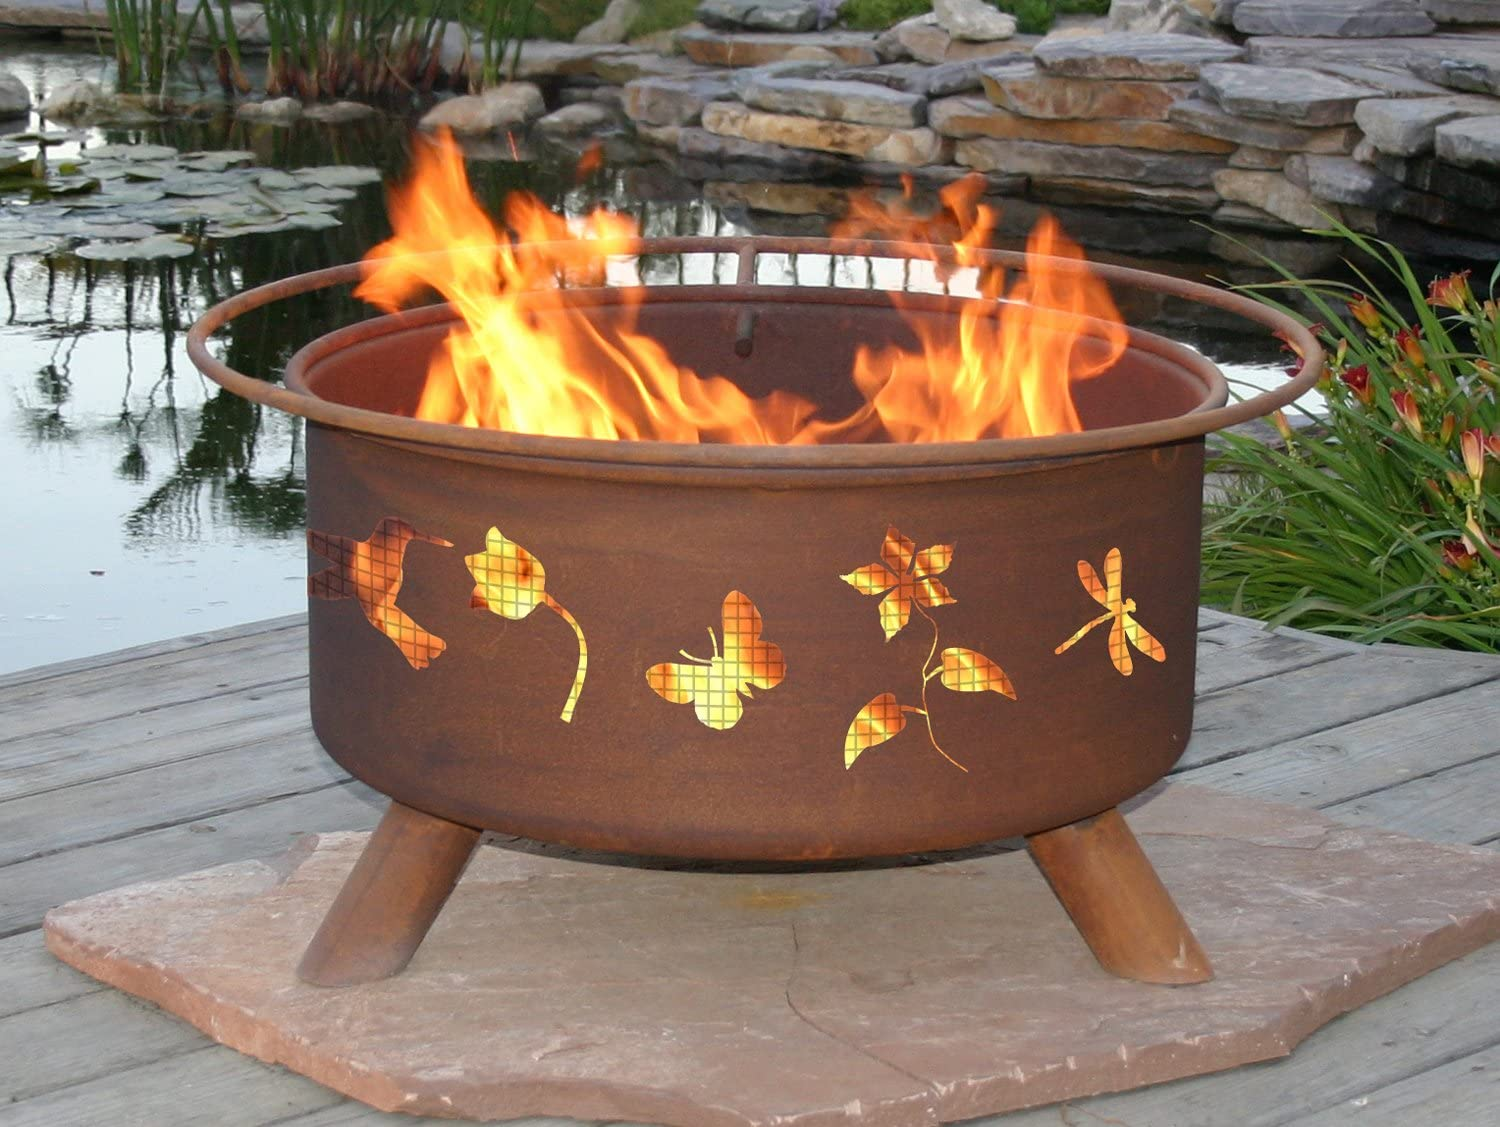 Patina Products F110, 30 Inch Flower Garden Fire Pit